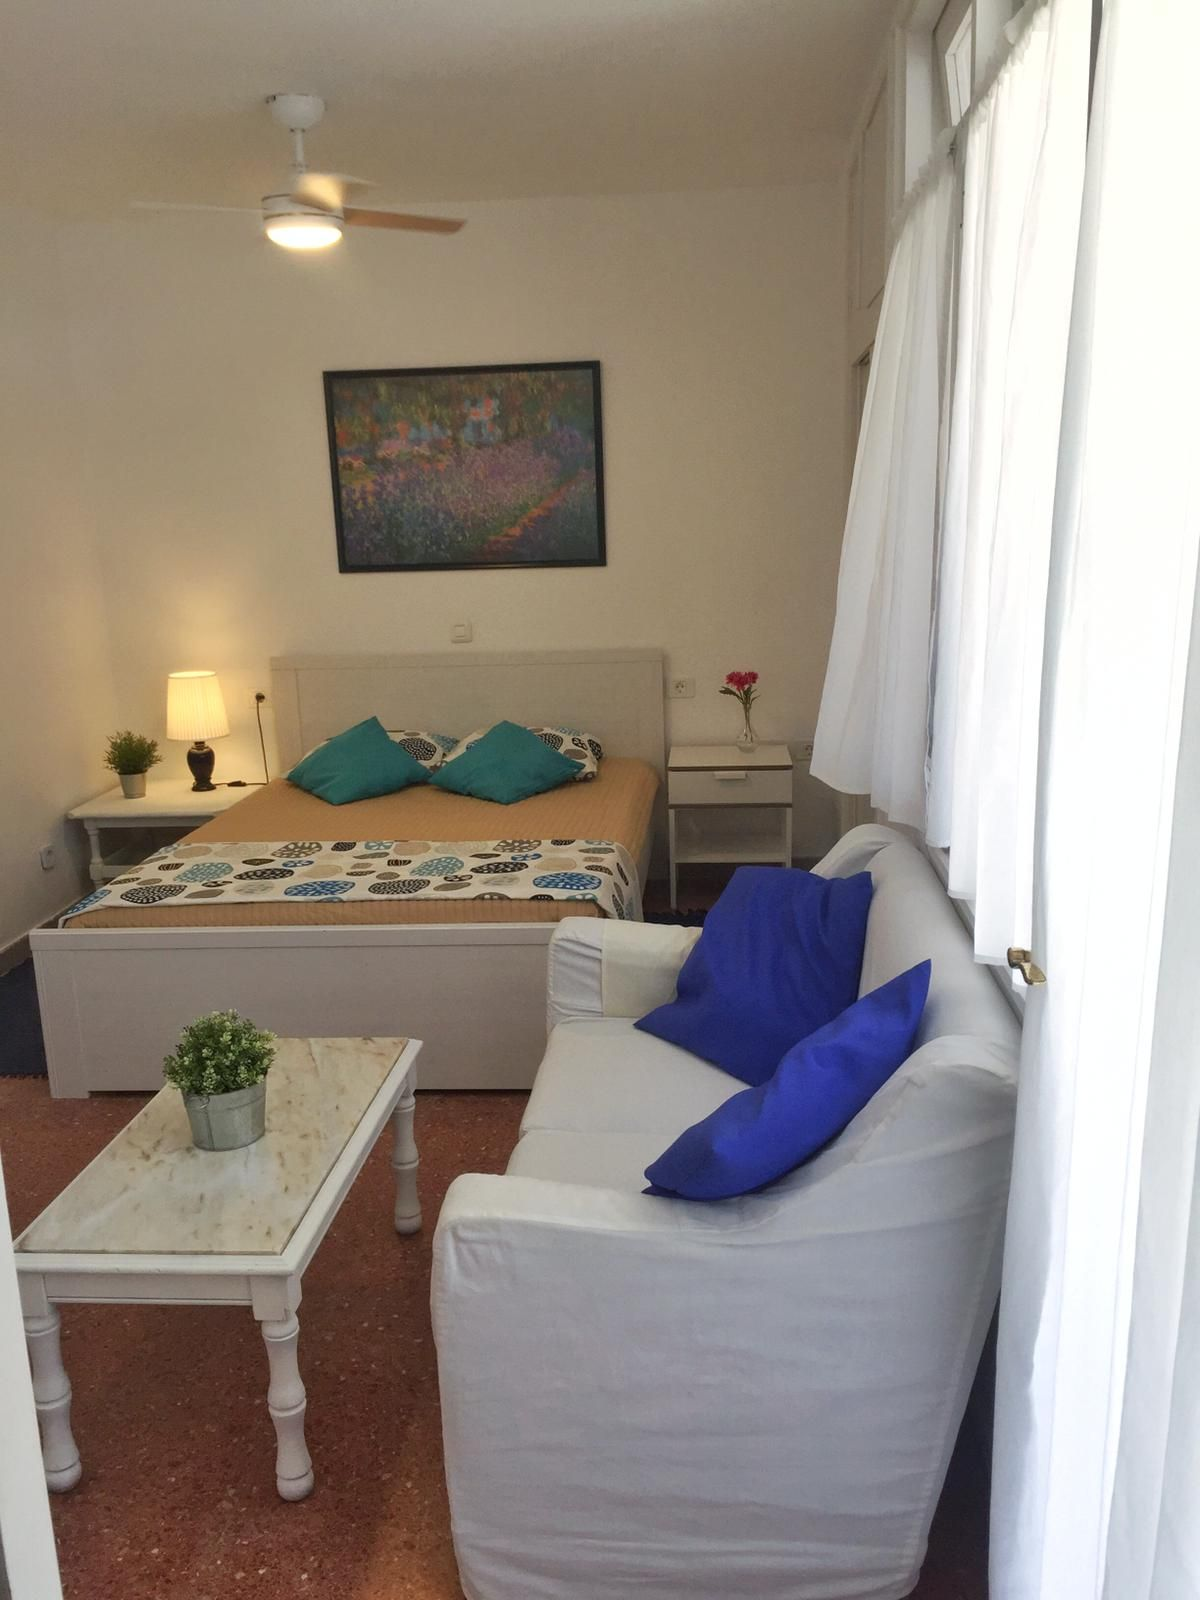 Apartment in Mogán, Puerto Rico, for rent